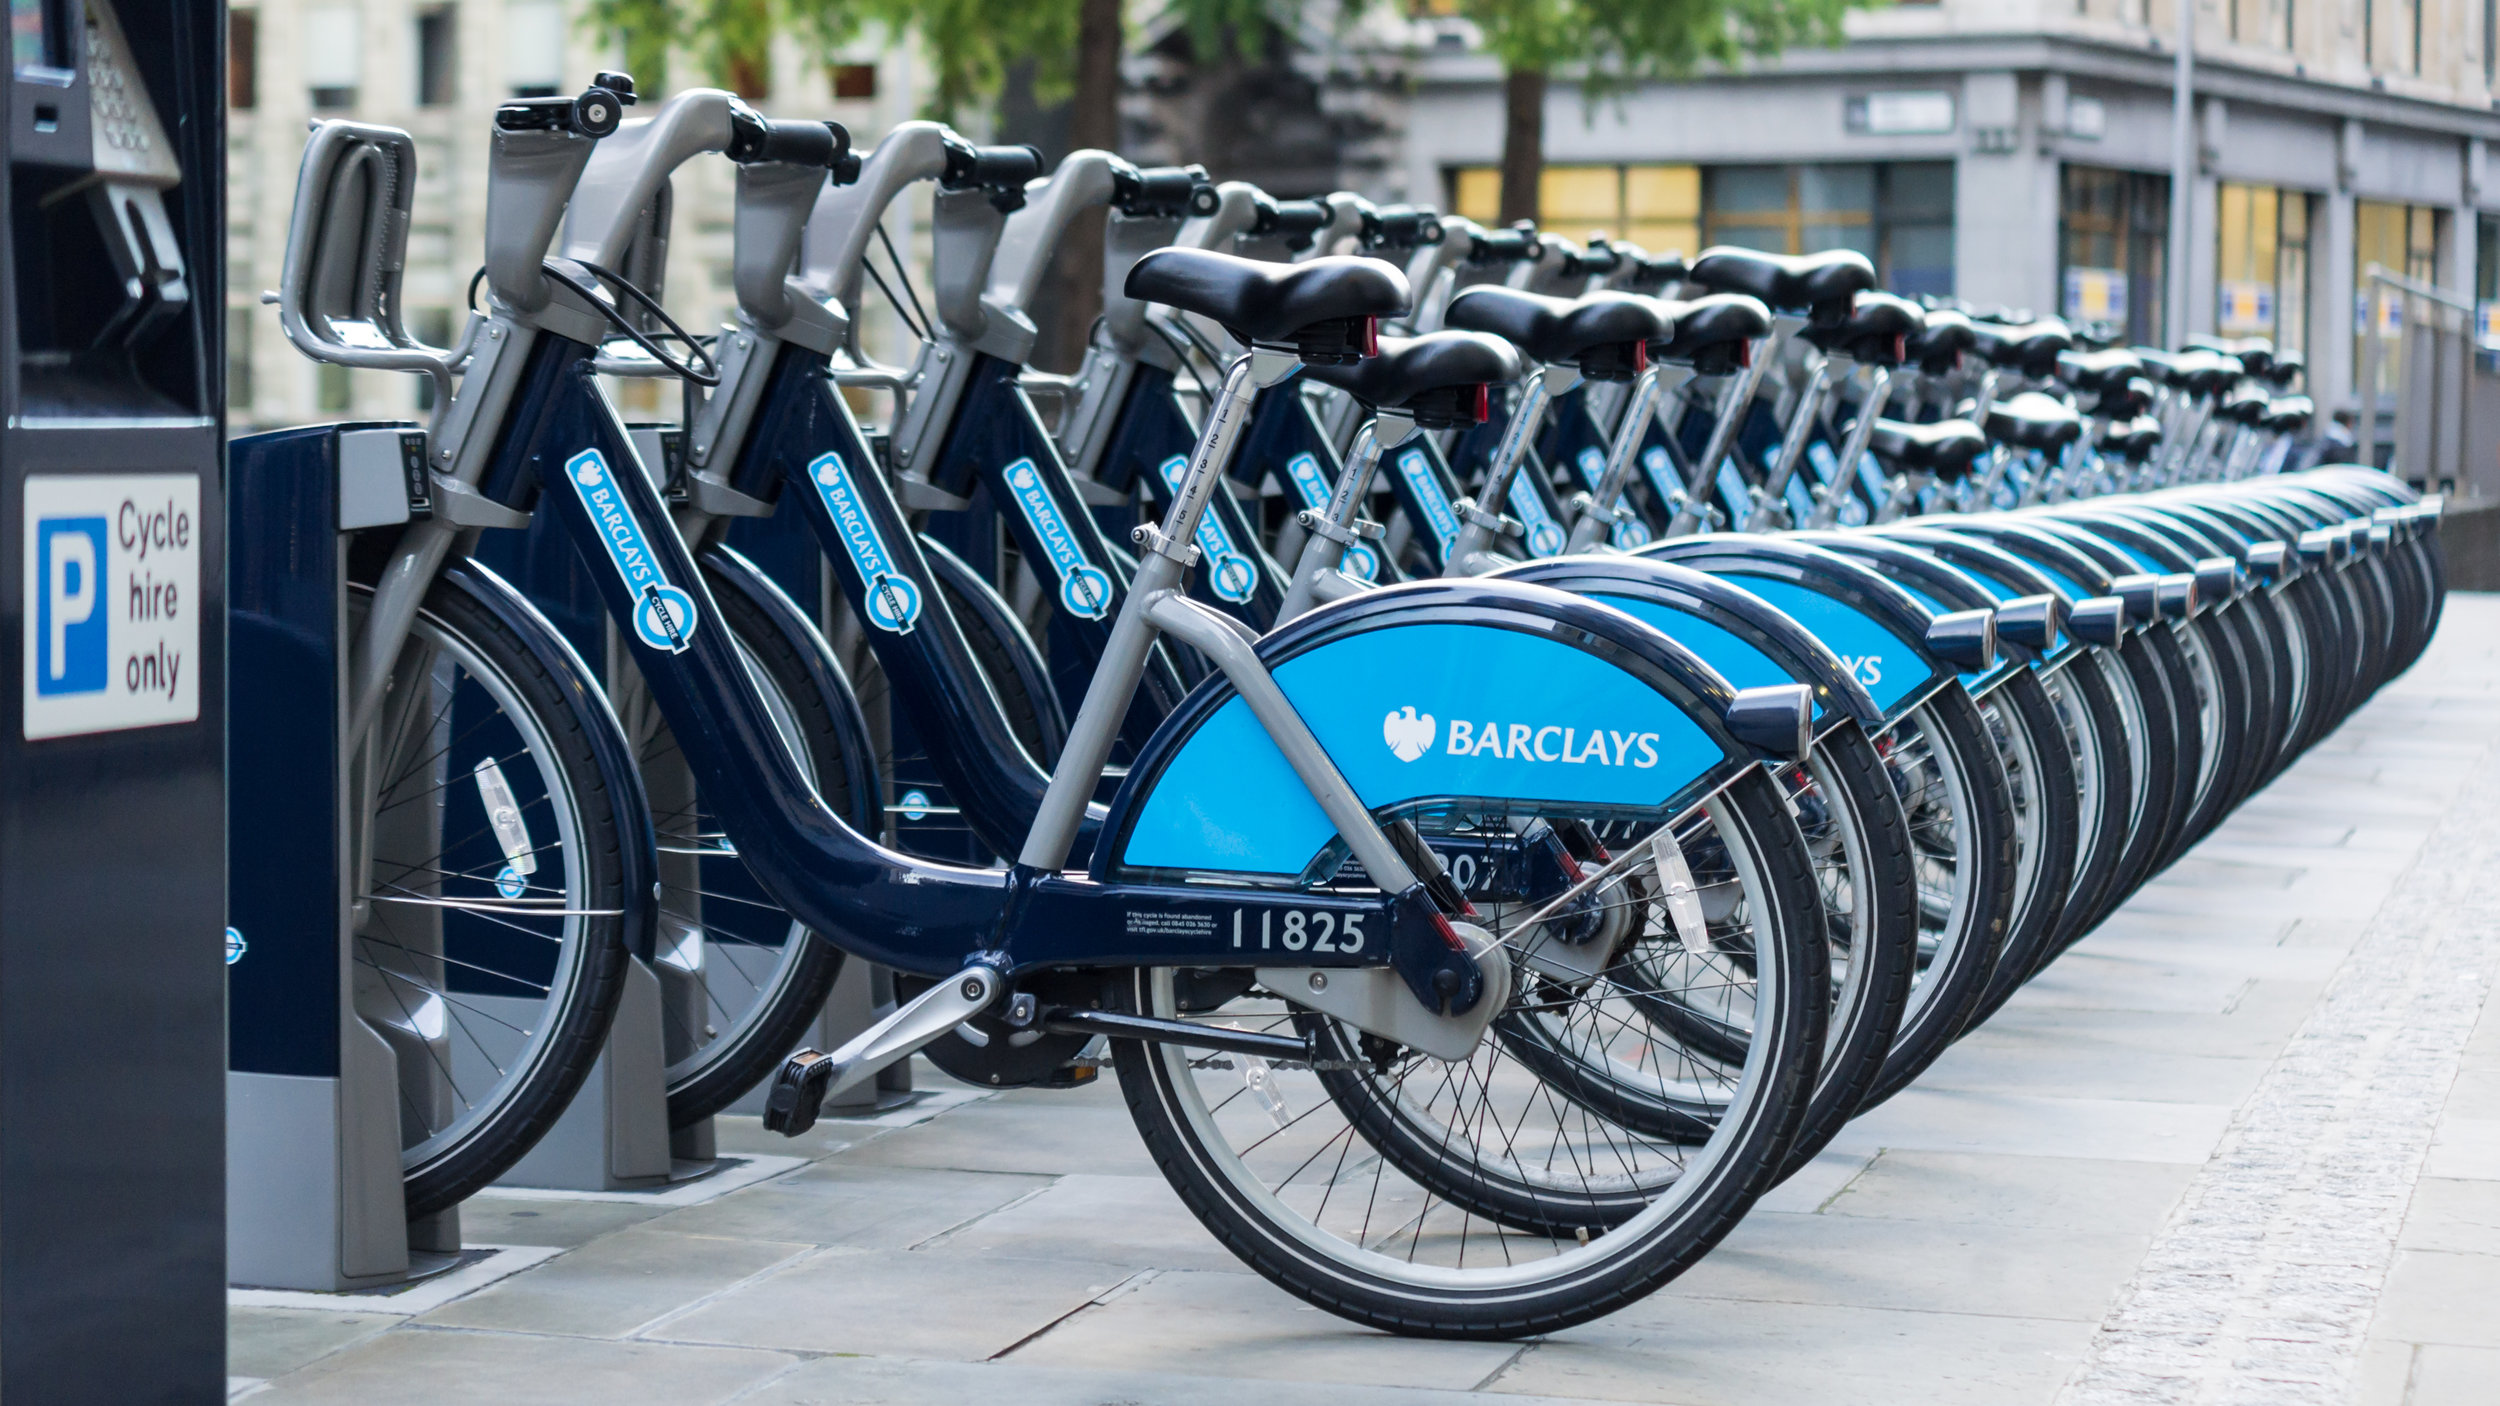 Barclays_Cycle_Hire,_St._Mary_Axe,_Aldgate.jpg